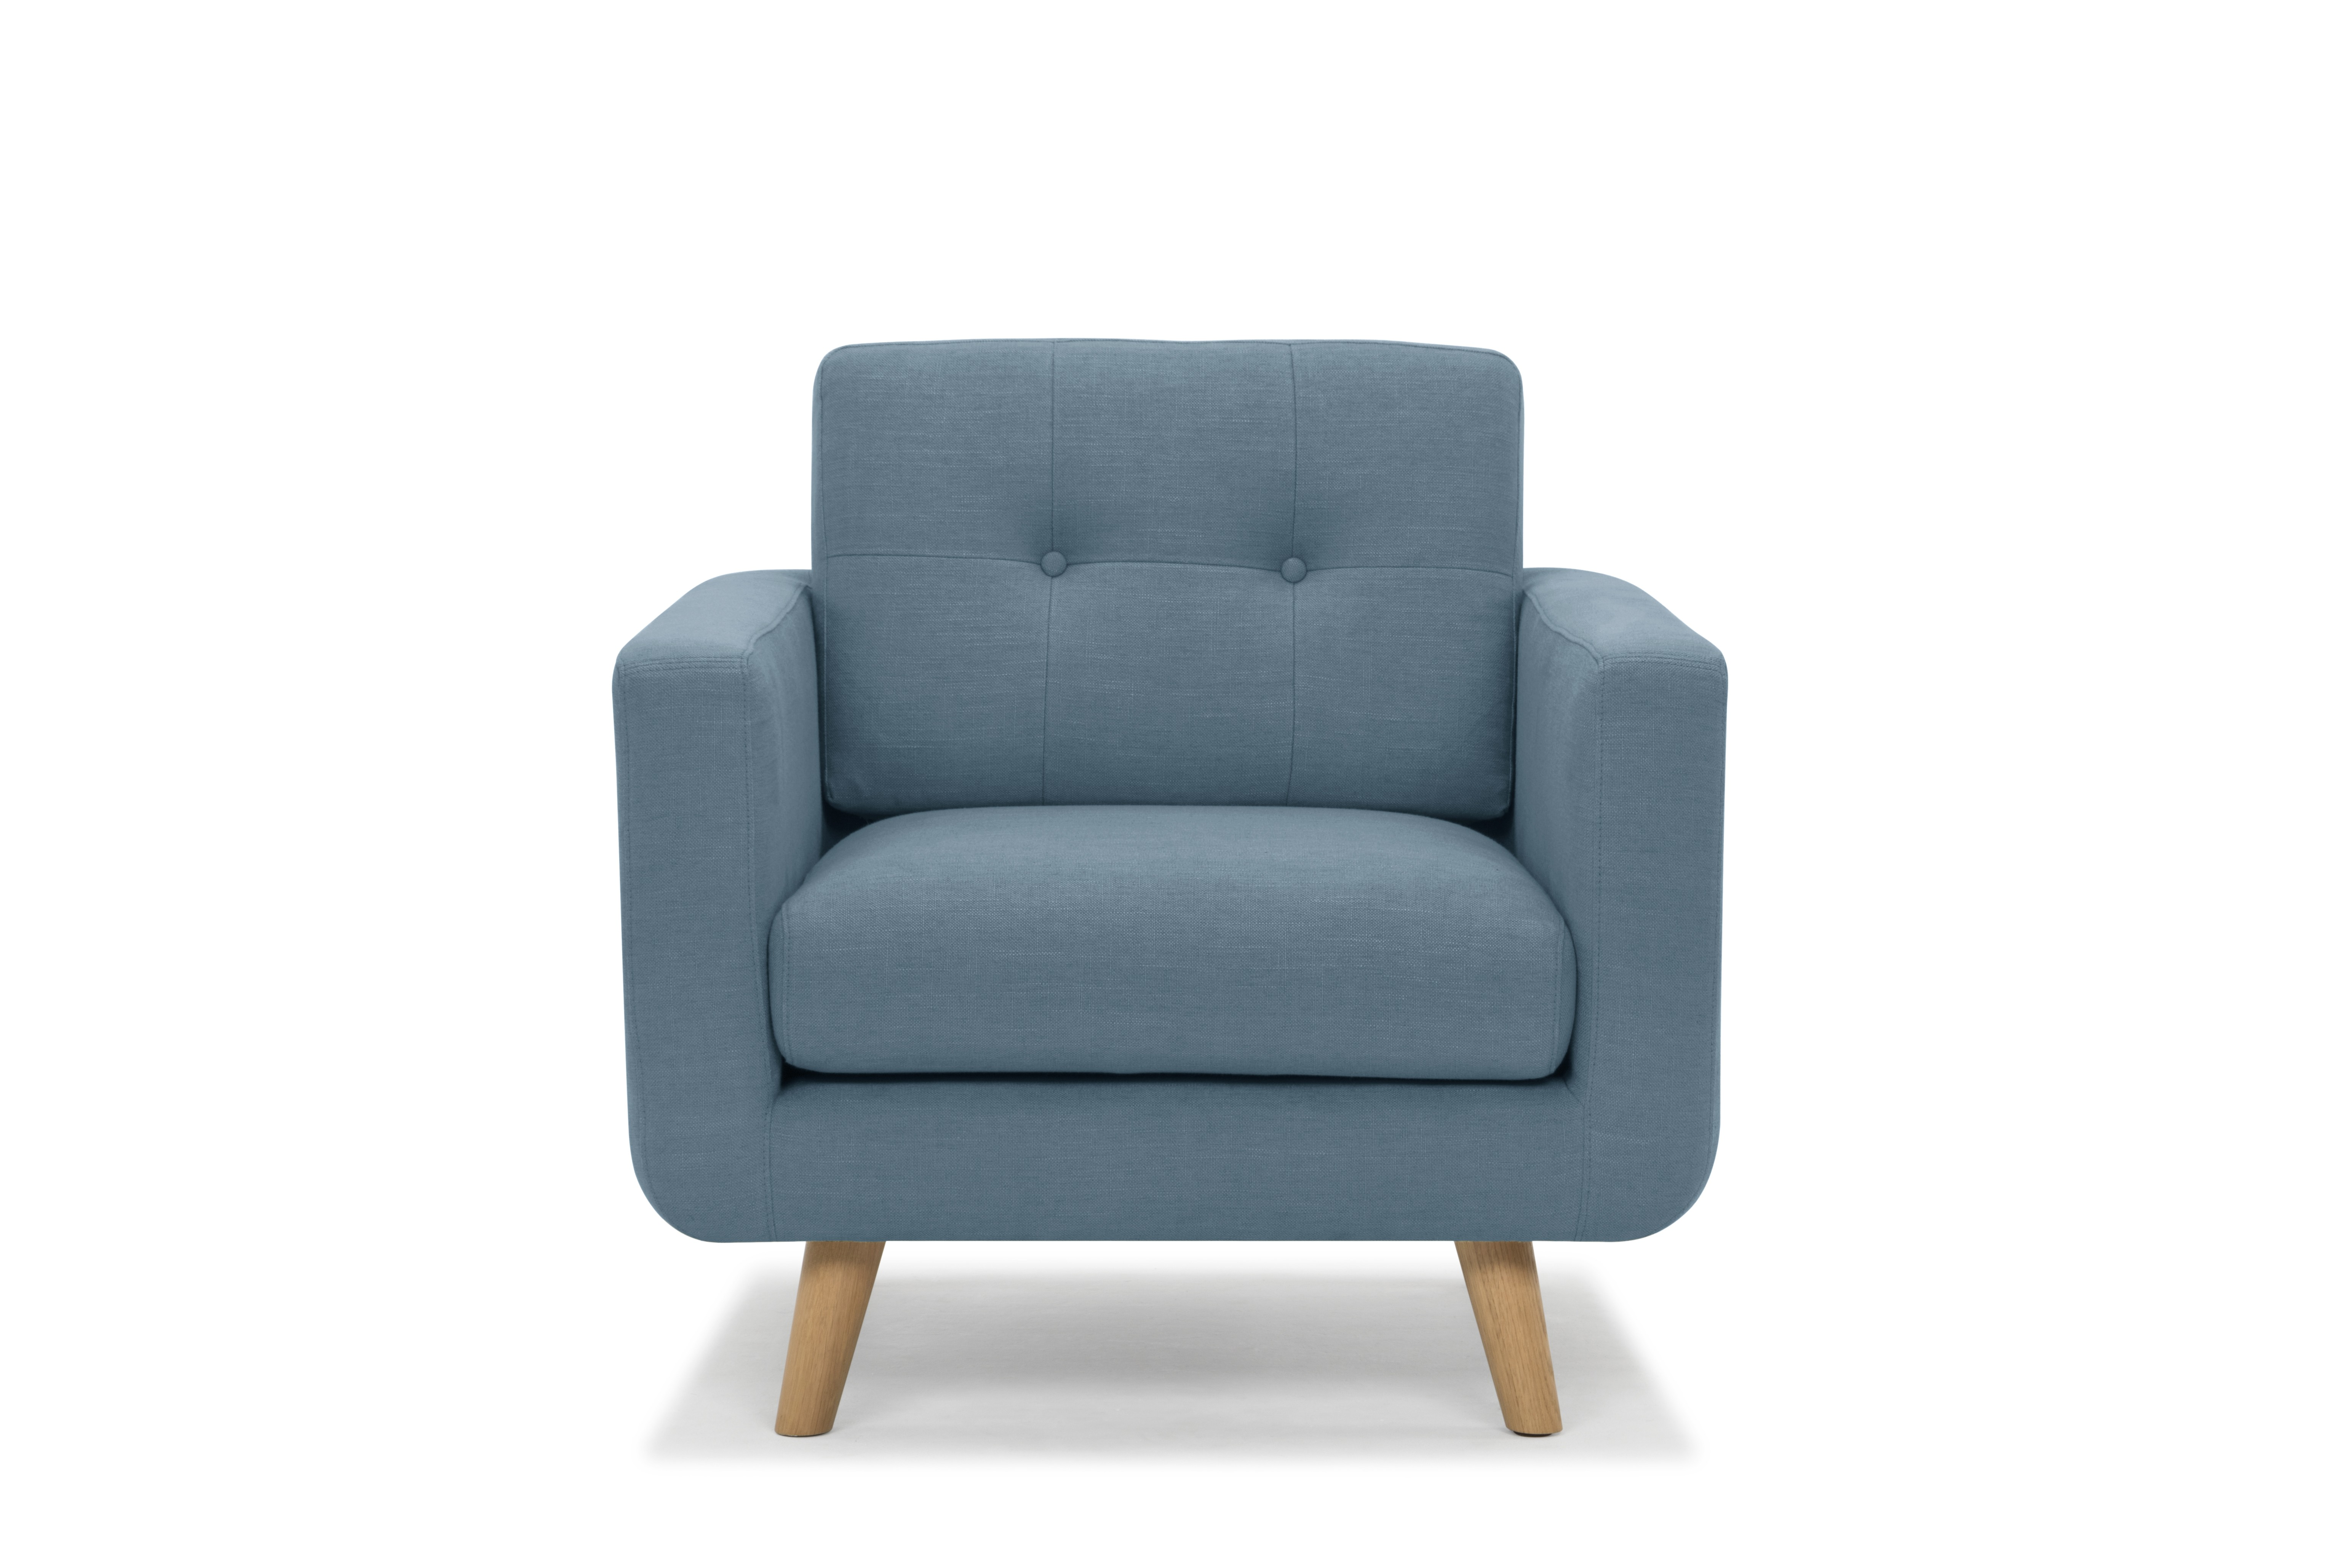 Diego Vente Fauteuil Meuble Achat Scandinave Mobilier Winner Tissu Yg7yfb6v